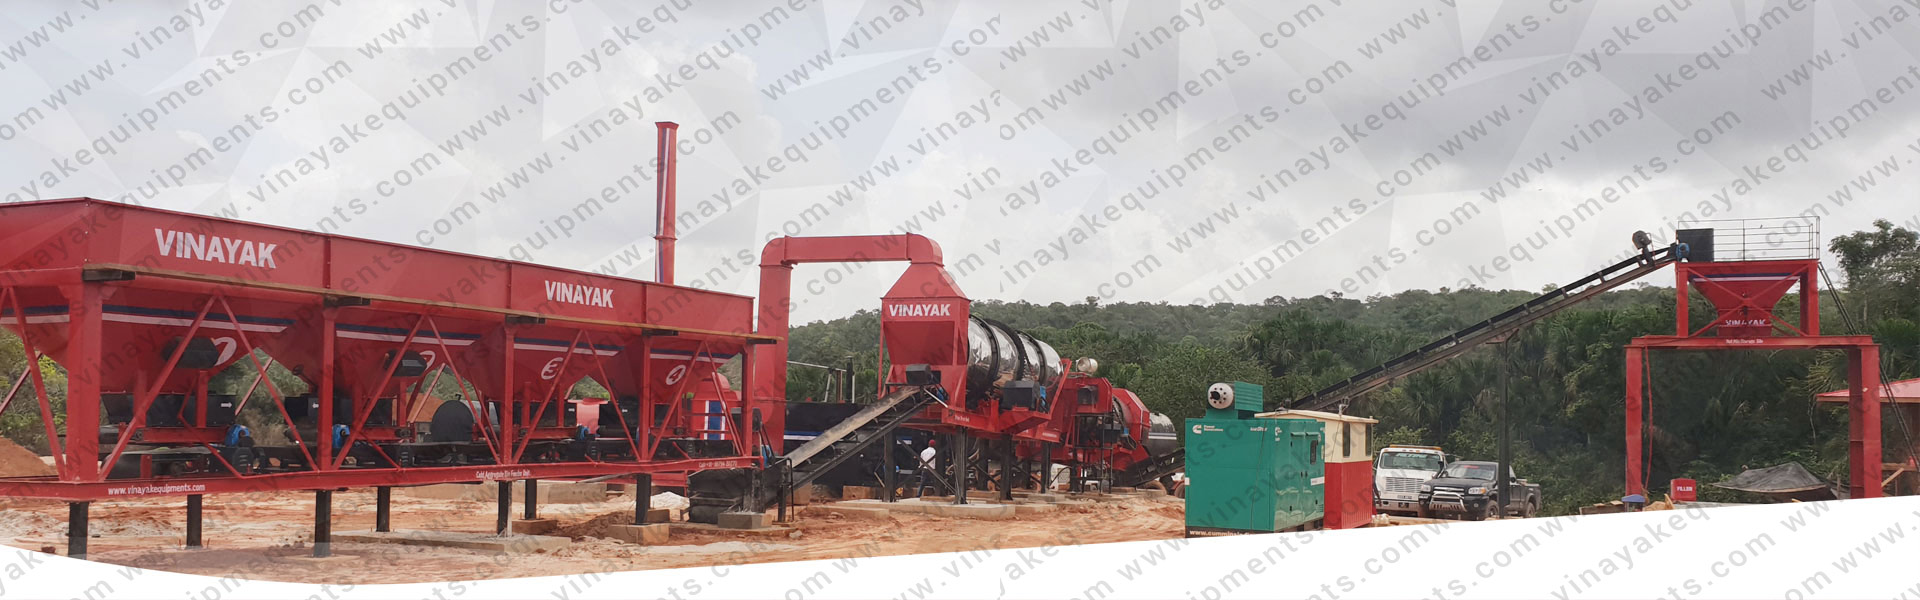 Hot Mix Plant Manufacturer in south africa, india, russia, malaysia